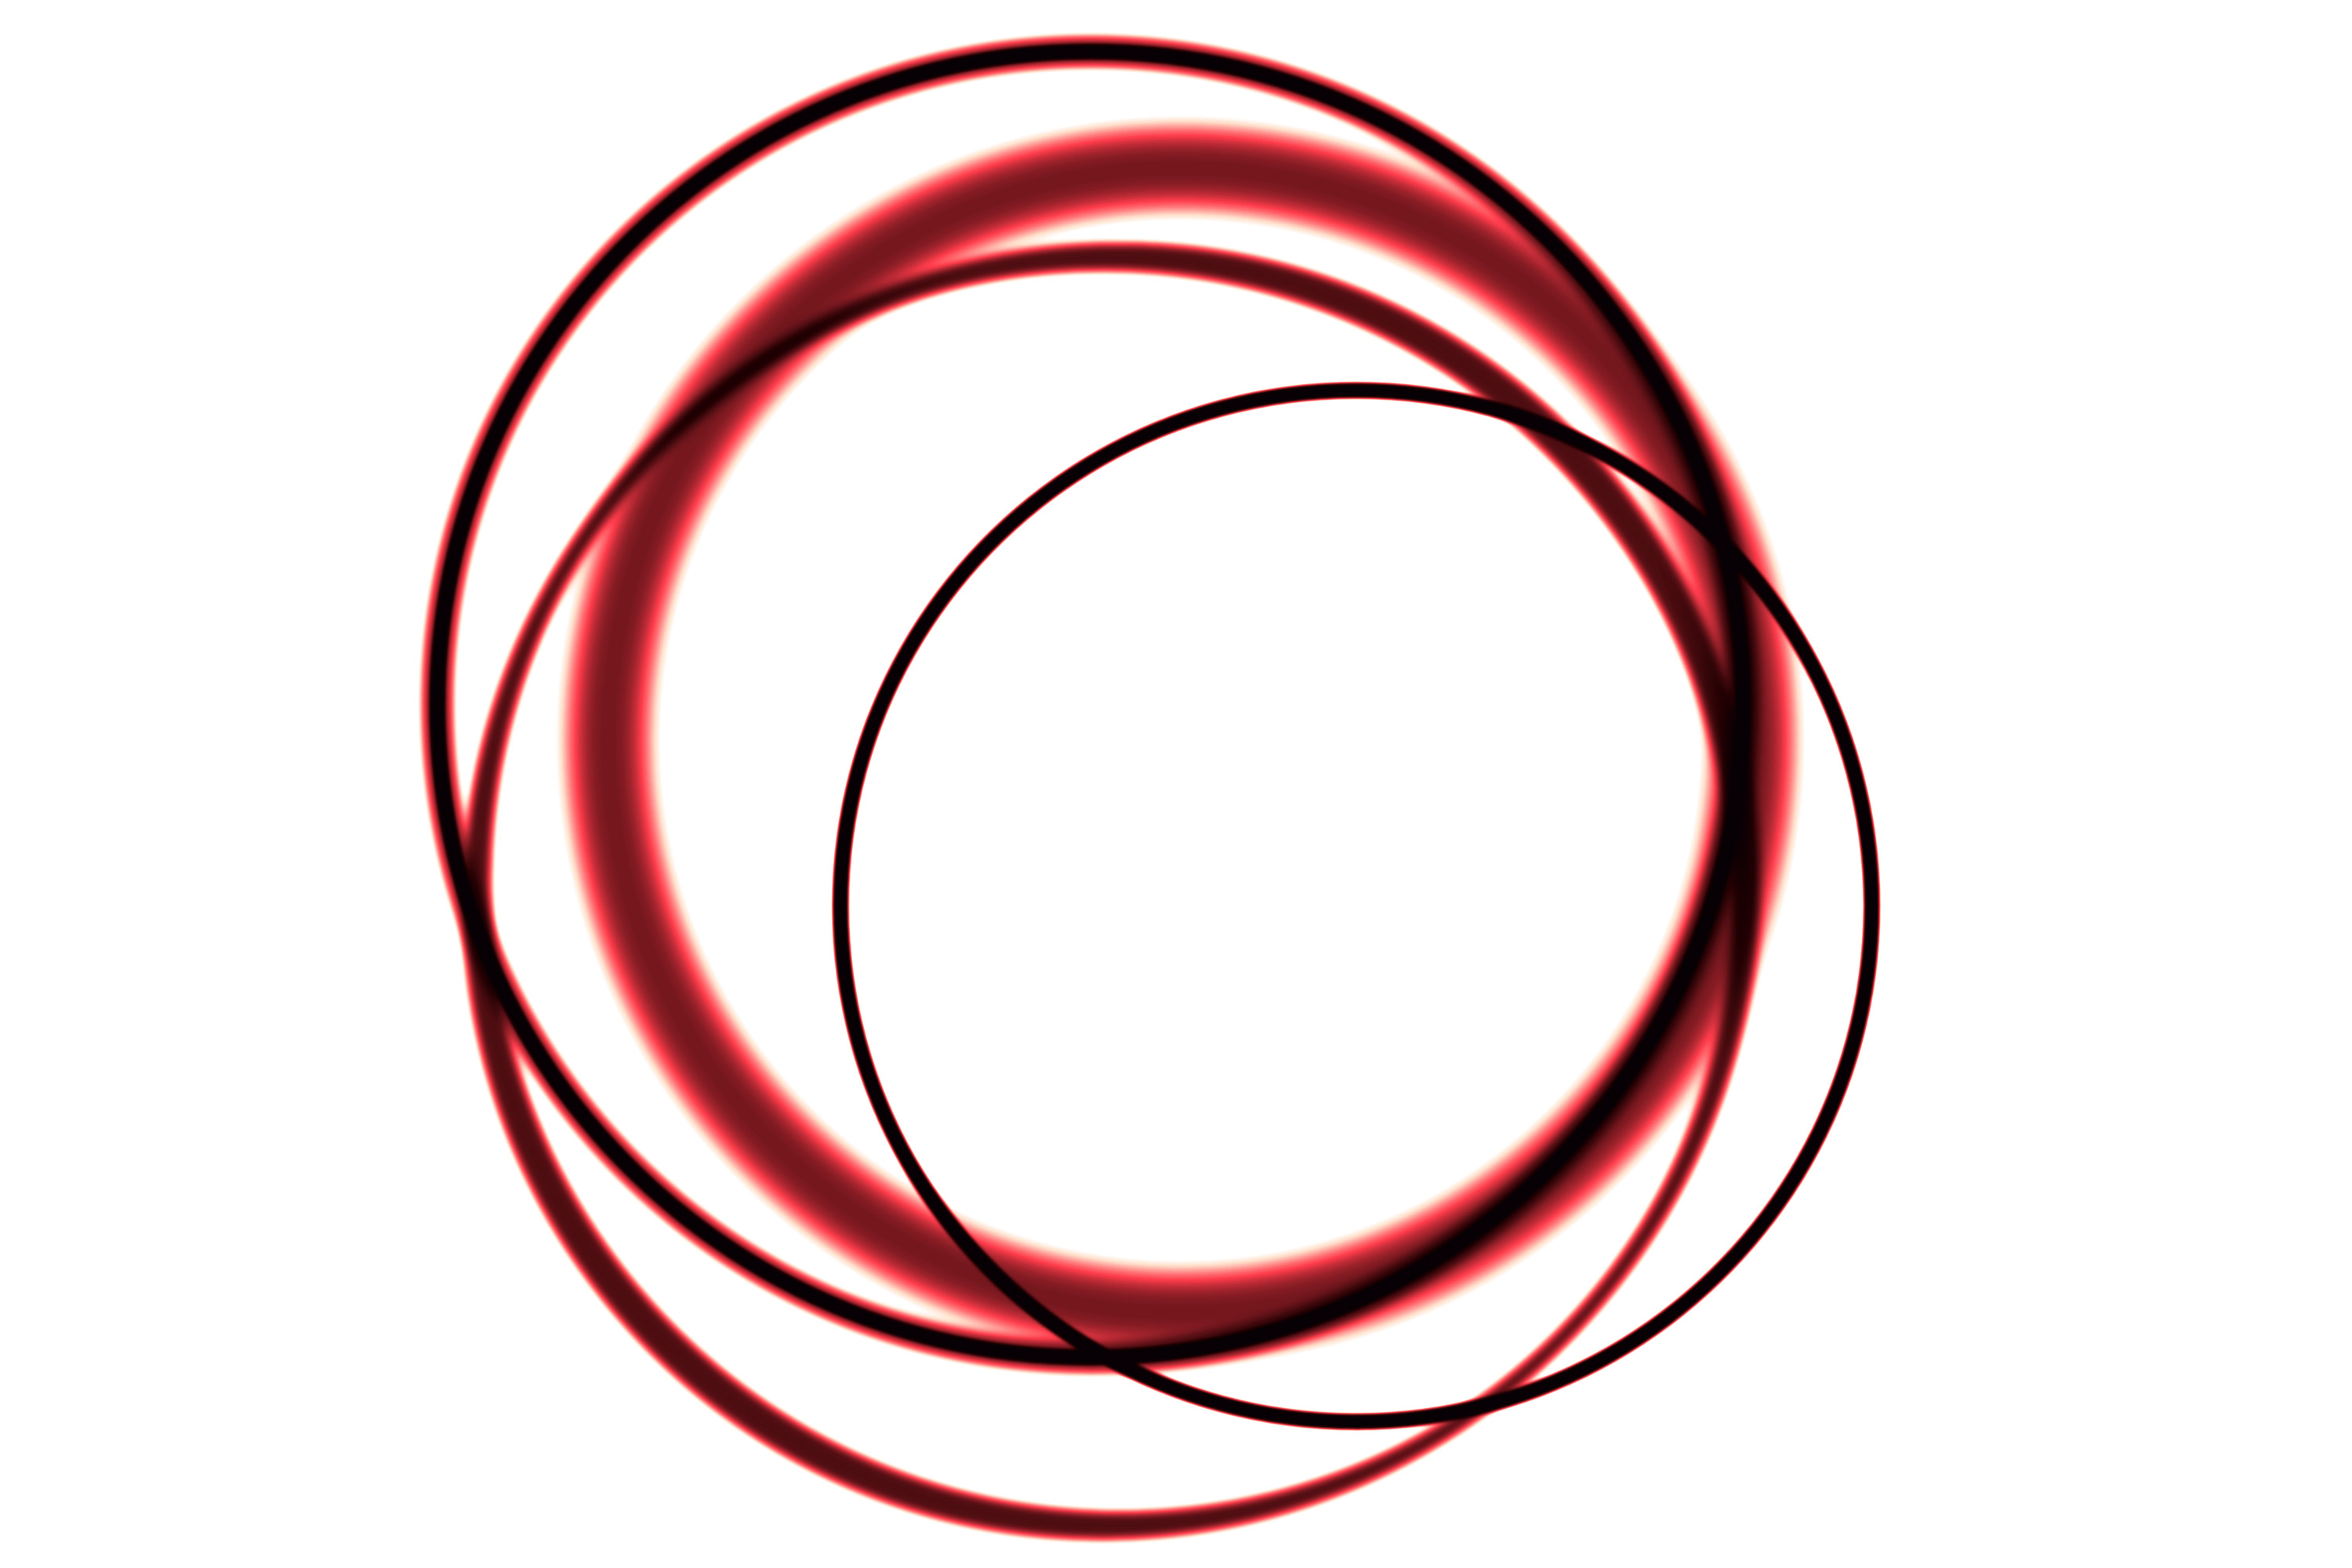 patterns of overlapping circles red